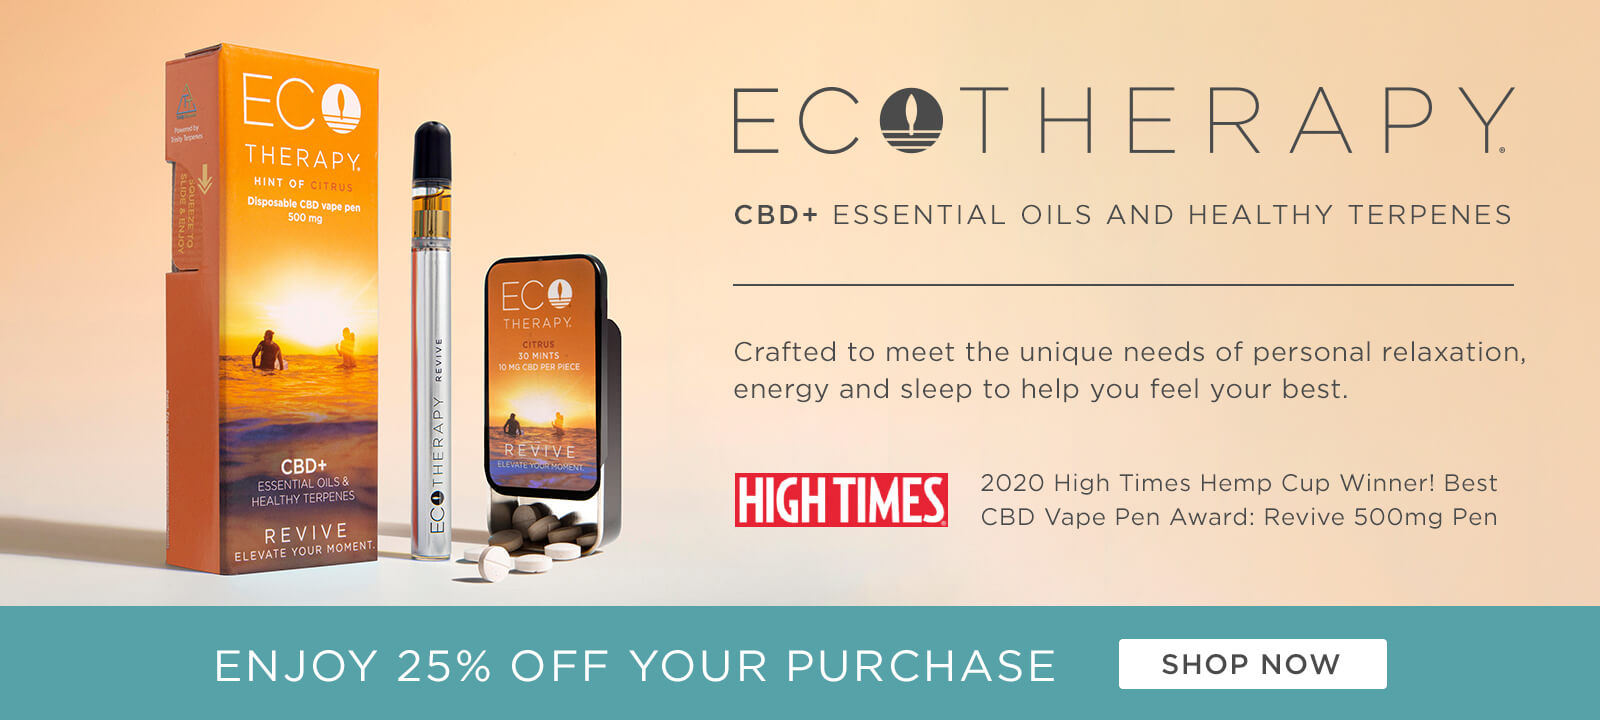 Eco Therapy CBD